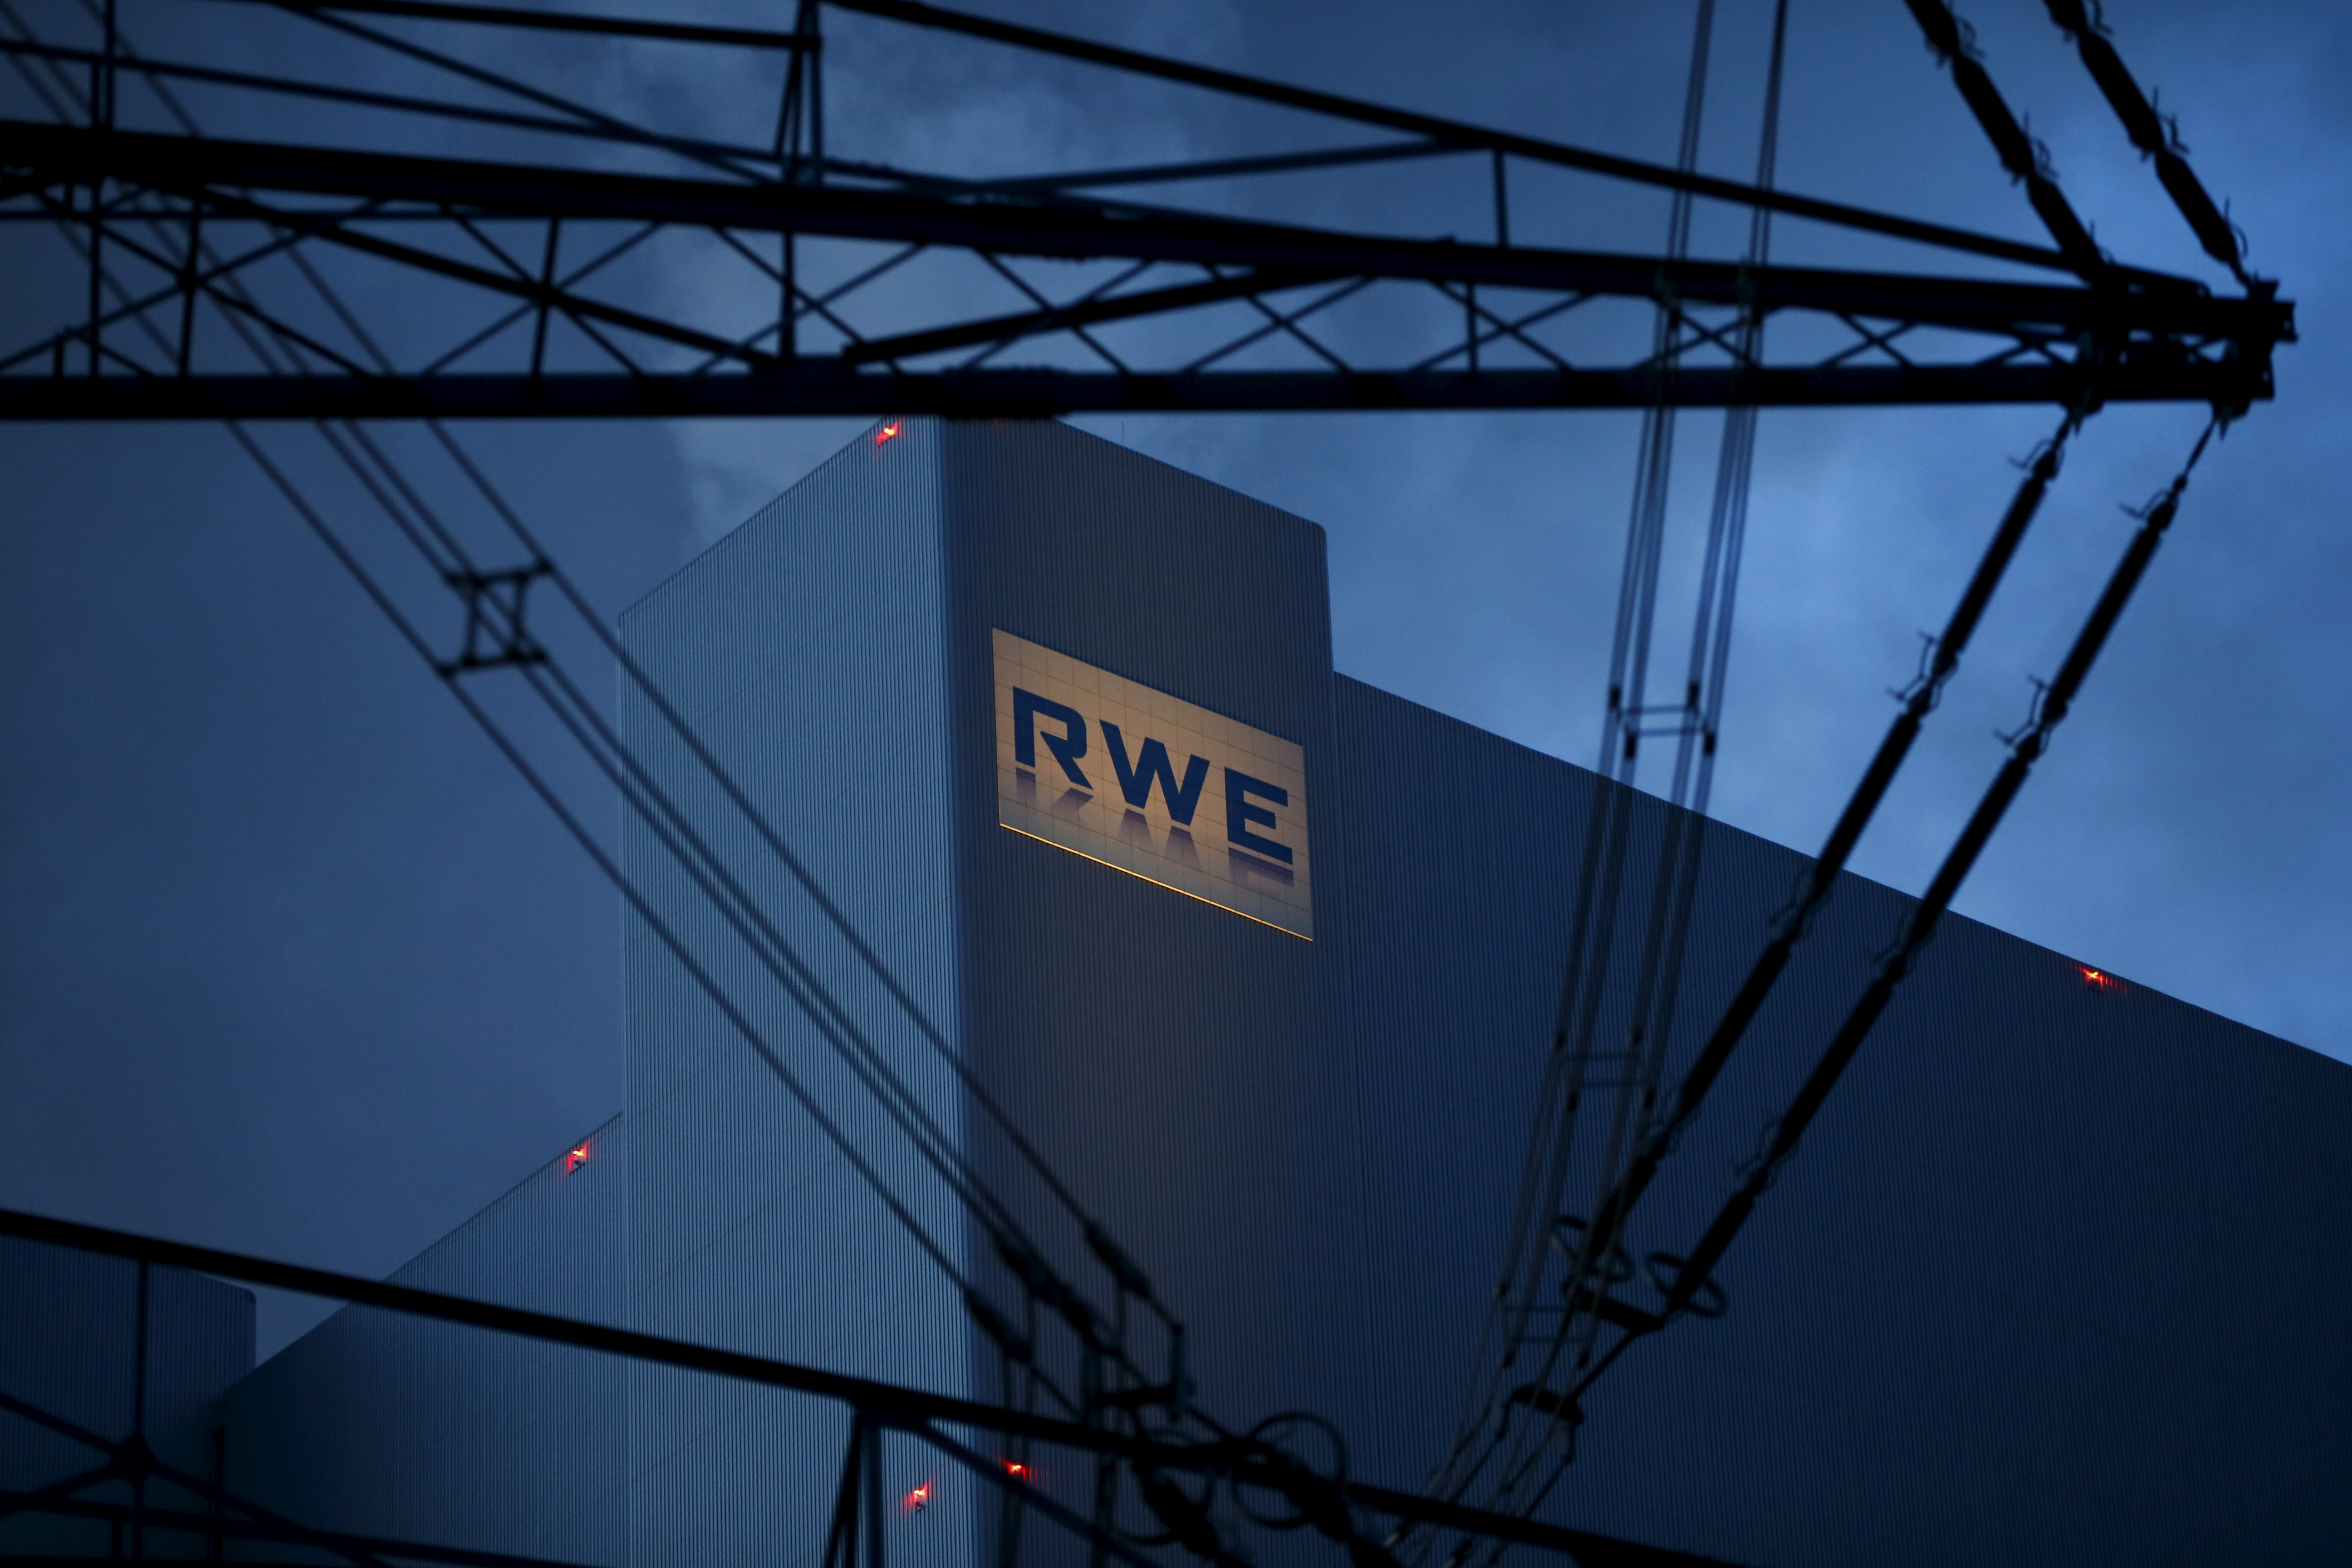 The logo of RWE, one of Europe's biggest electricity and gas companies is seen at block F/G of RWE's new coal power plant in Neurath, north-west of Cologne, Germany in this picture taken March 3, 2016. REUTERS/Wolfgang Rattay